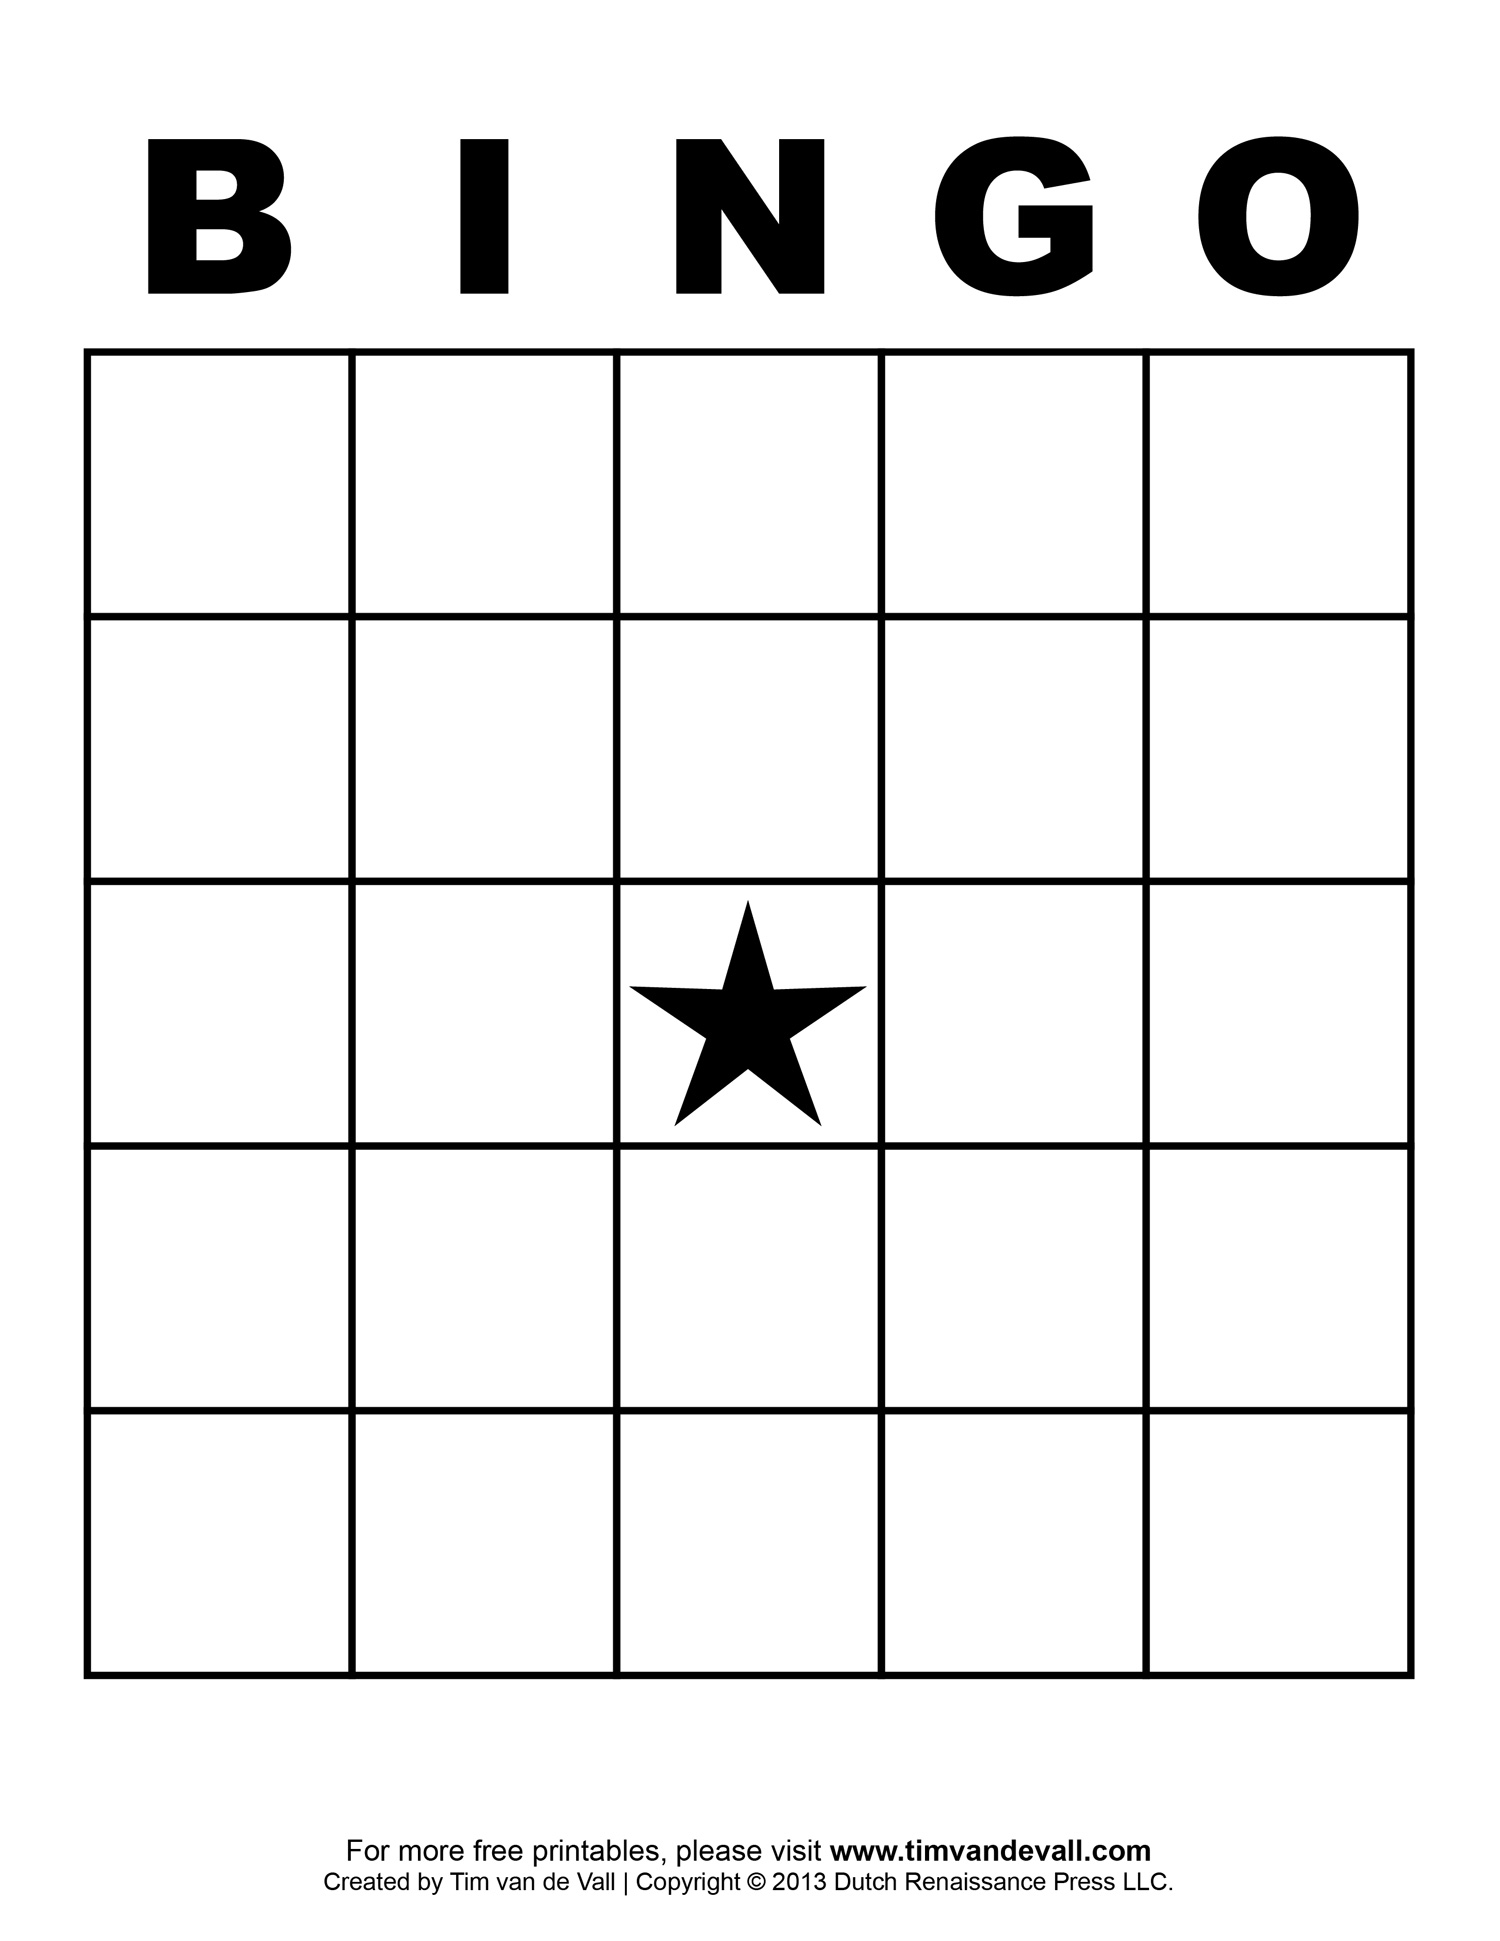 Bingo template word idealstalist bingo template word solutioingenieria Images